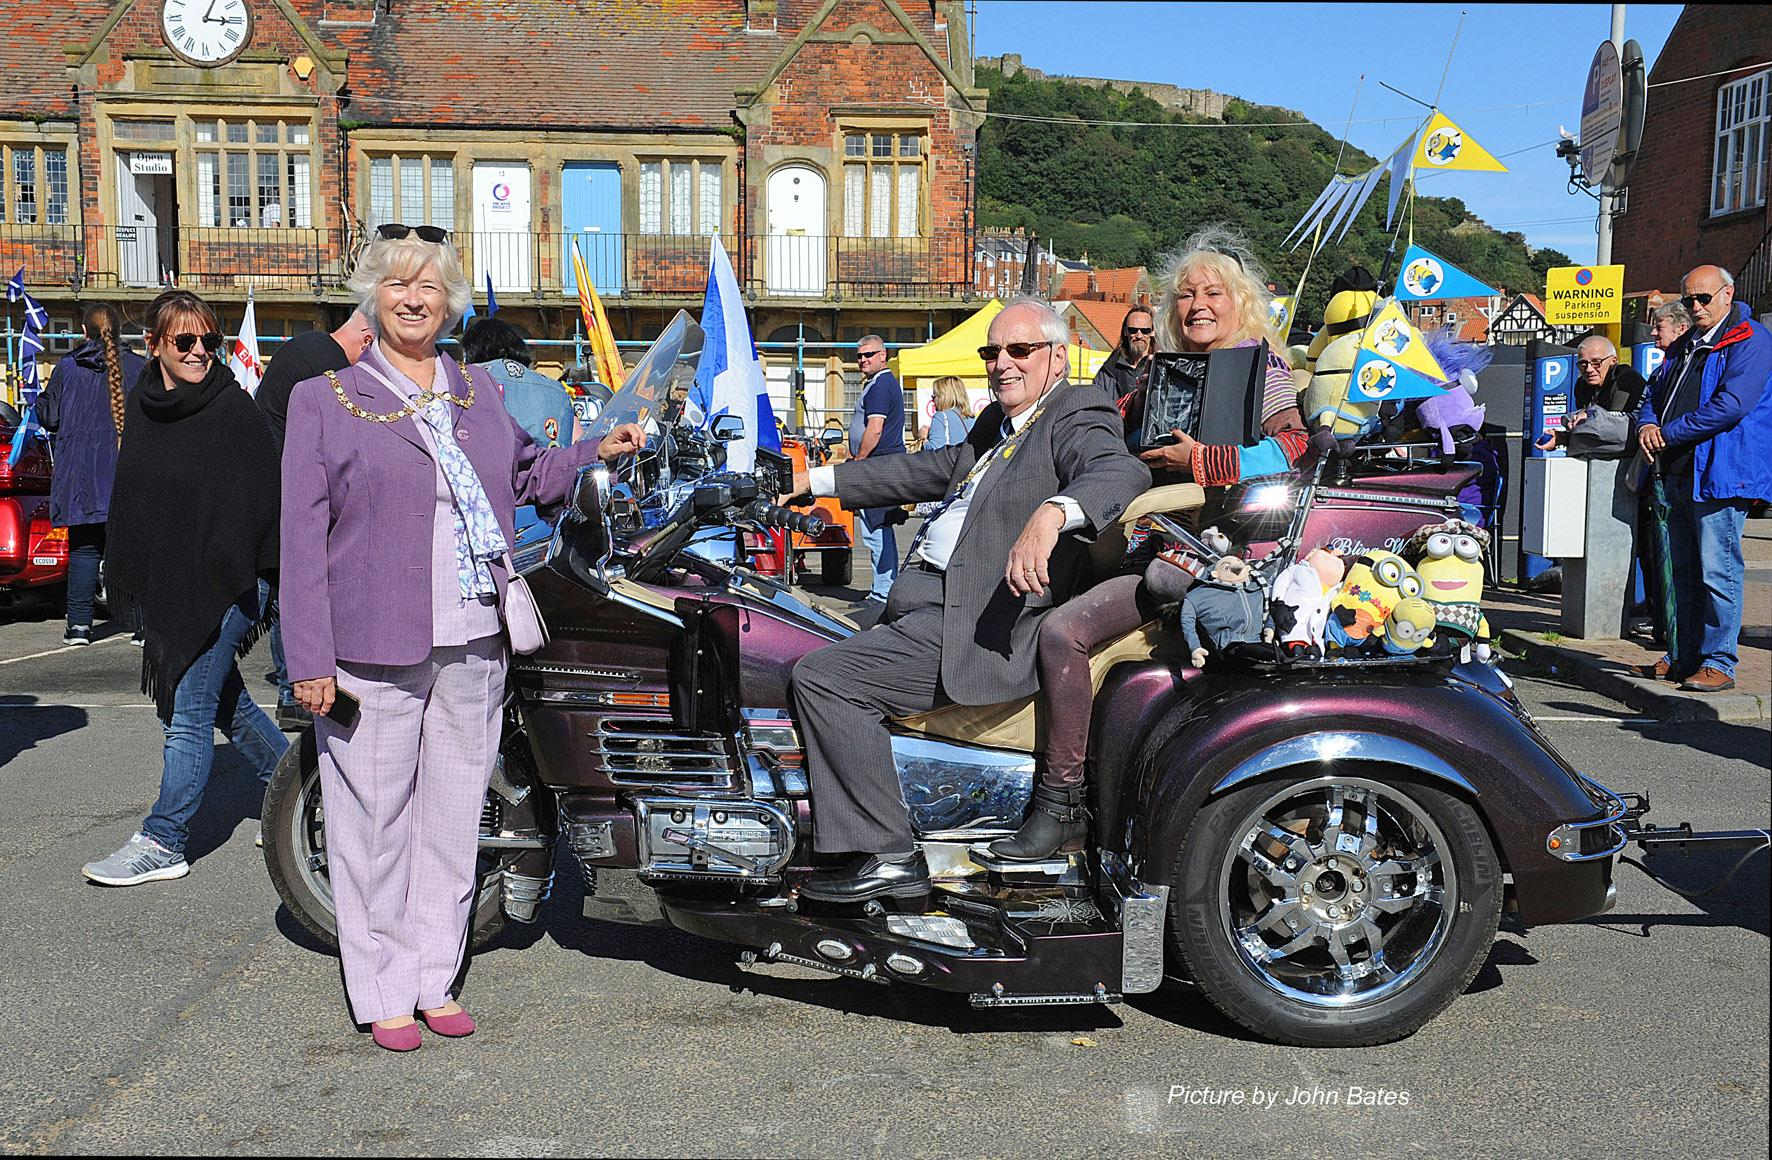 Picture of the Mayor and Mayoress testing out one of the GoldWing motorbikes